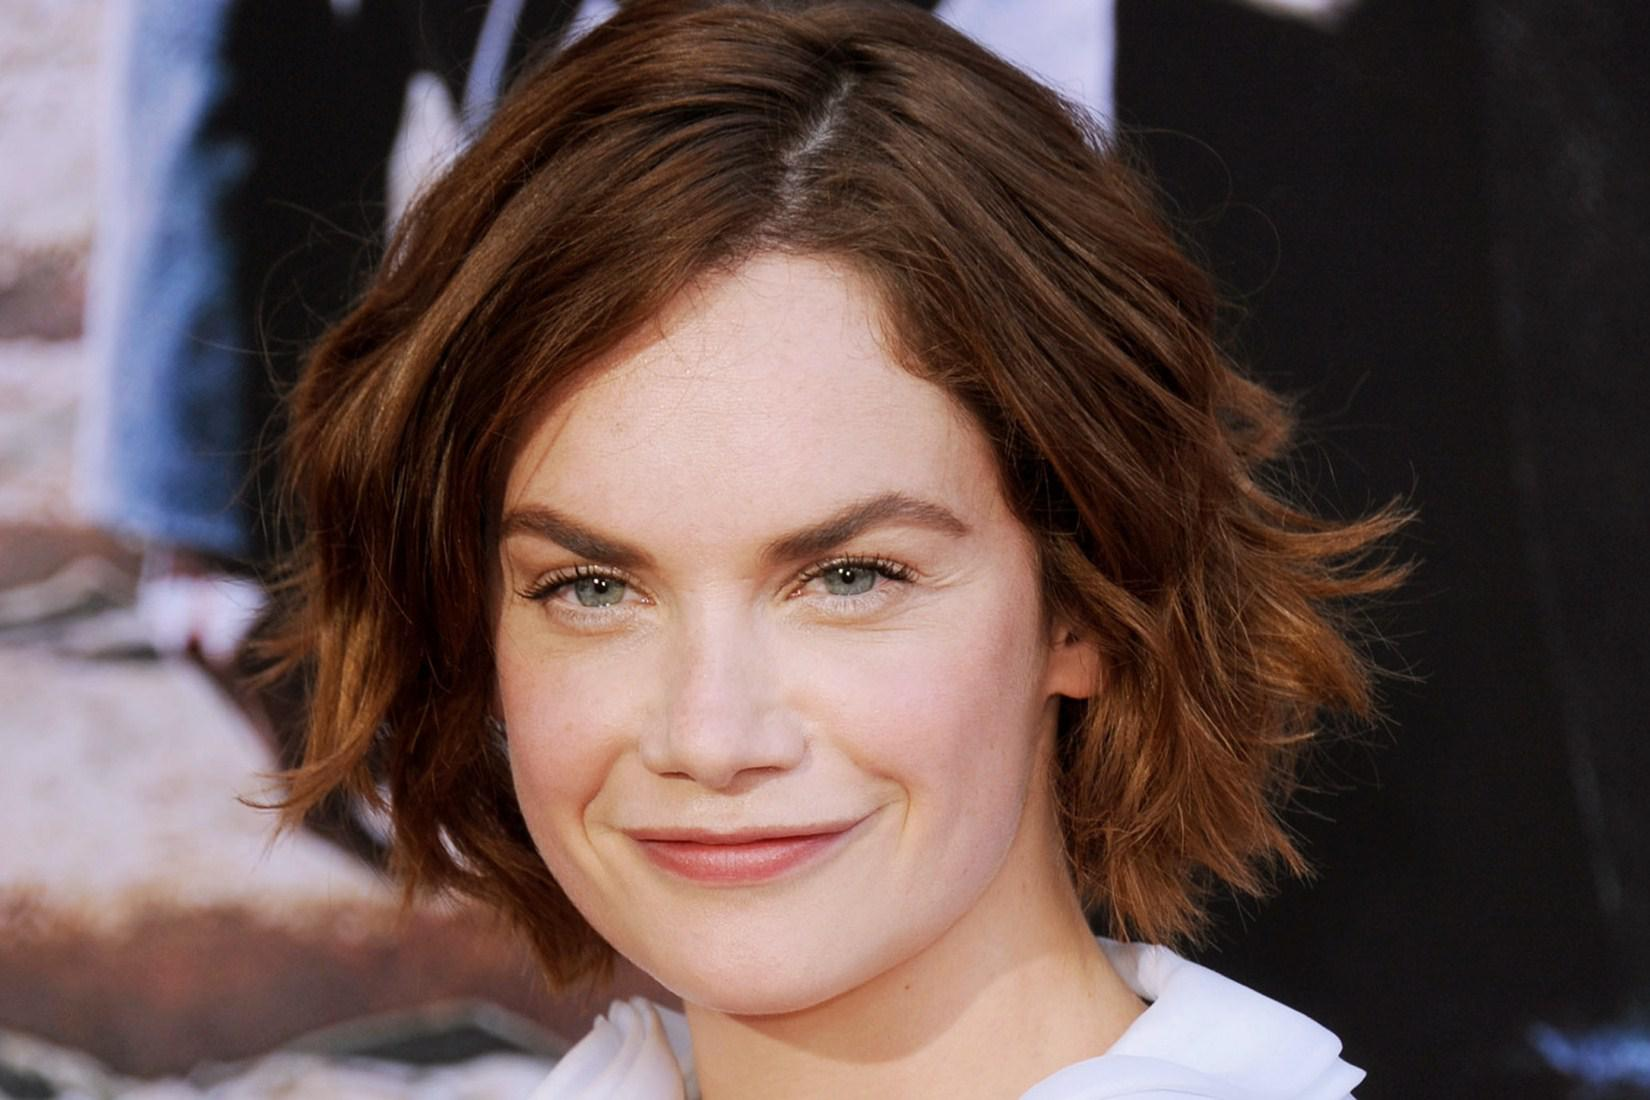 HD Ruth Wilson Smiling Wallpaper 959